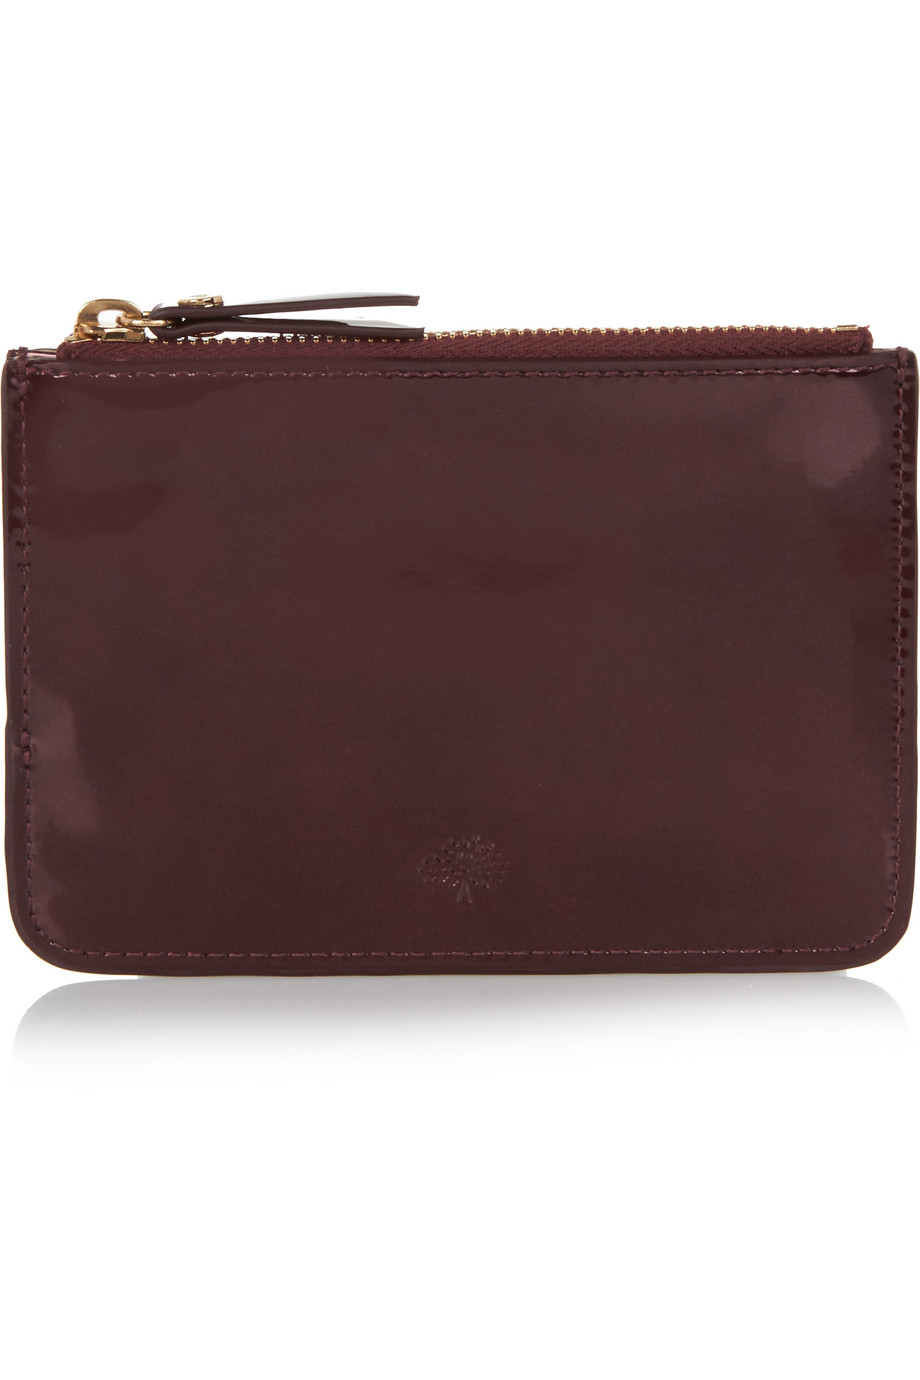 Mulberry Patent-Leather Pouch, Burgundy, Women's